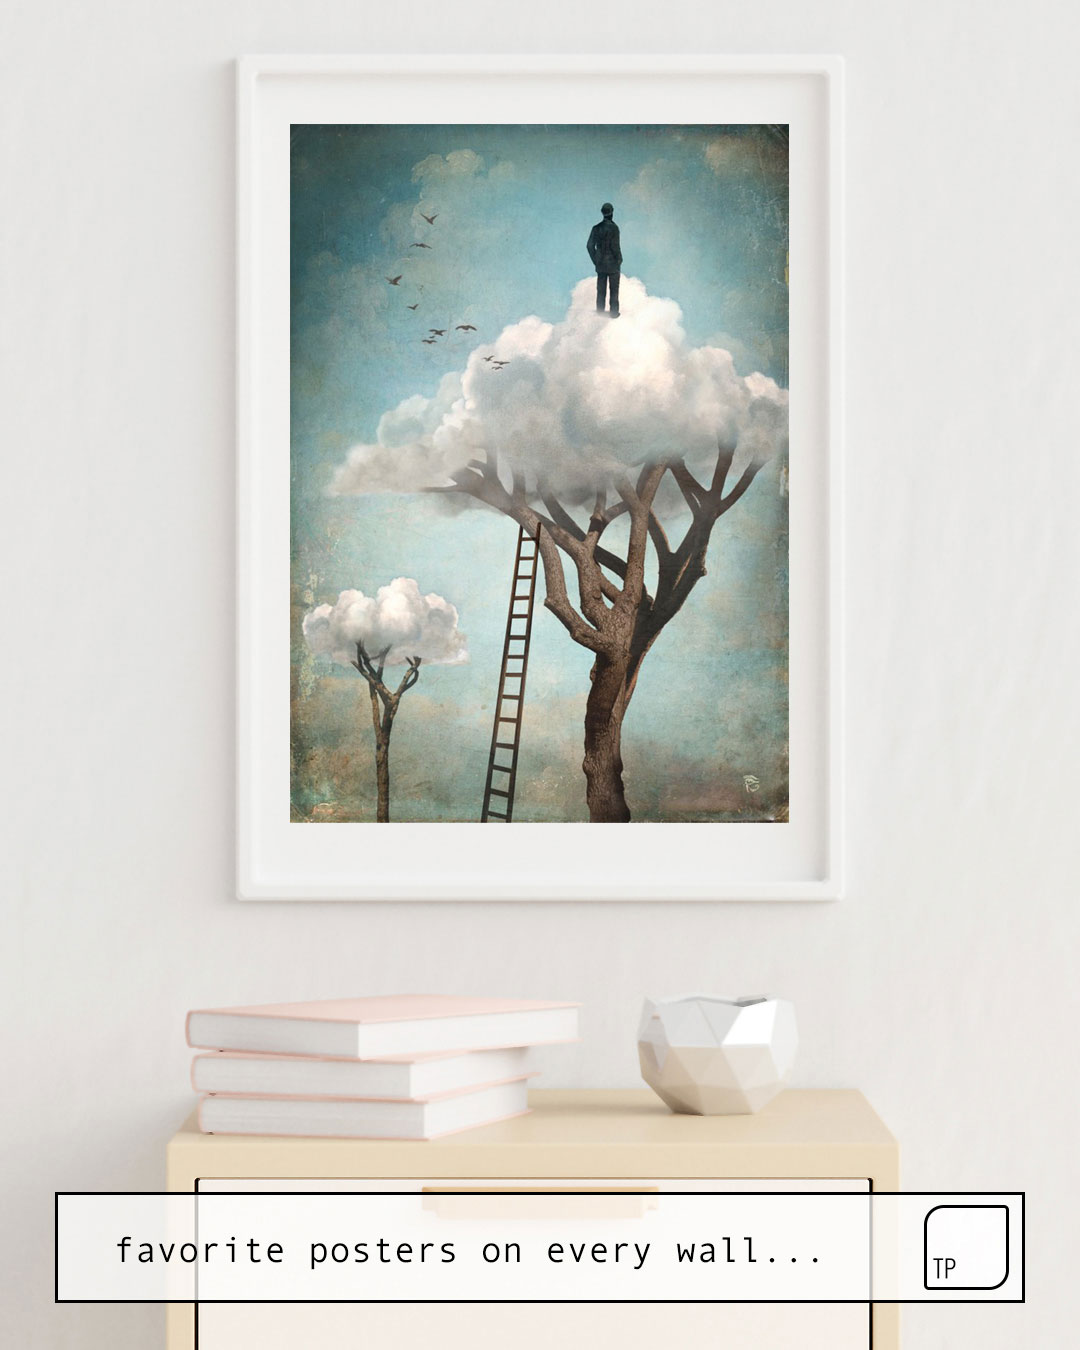 The photo shows an example of furnishing with the motif THE GREAT ESCAPE by Christian Schloe as mural